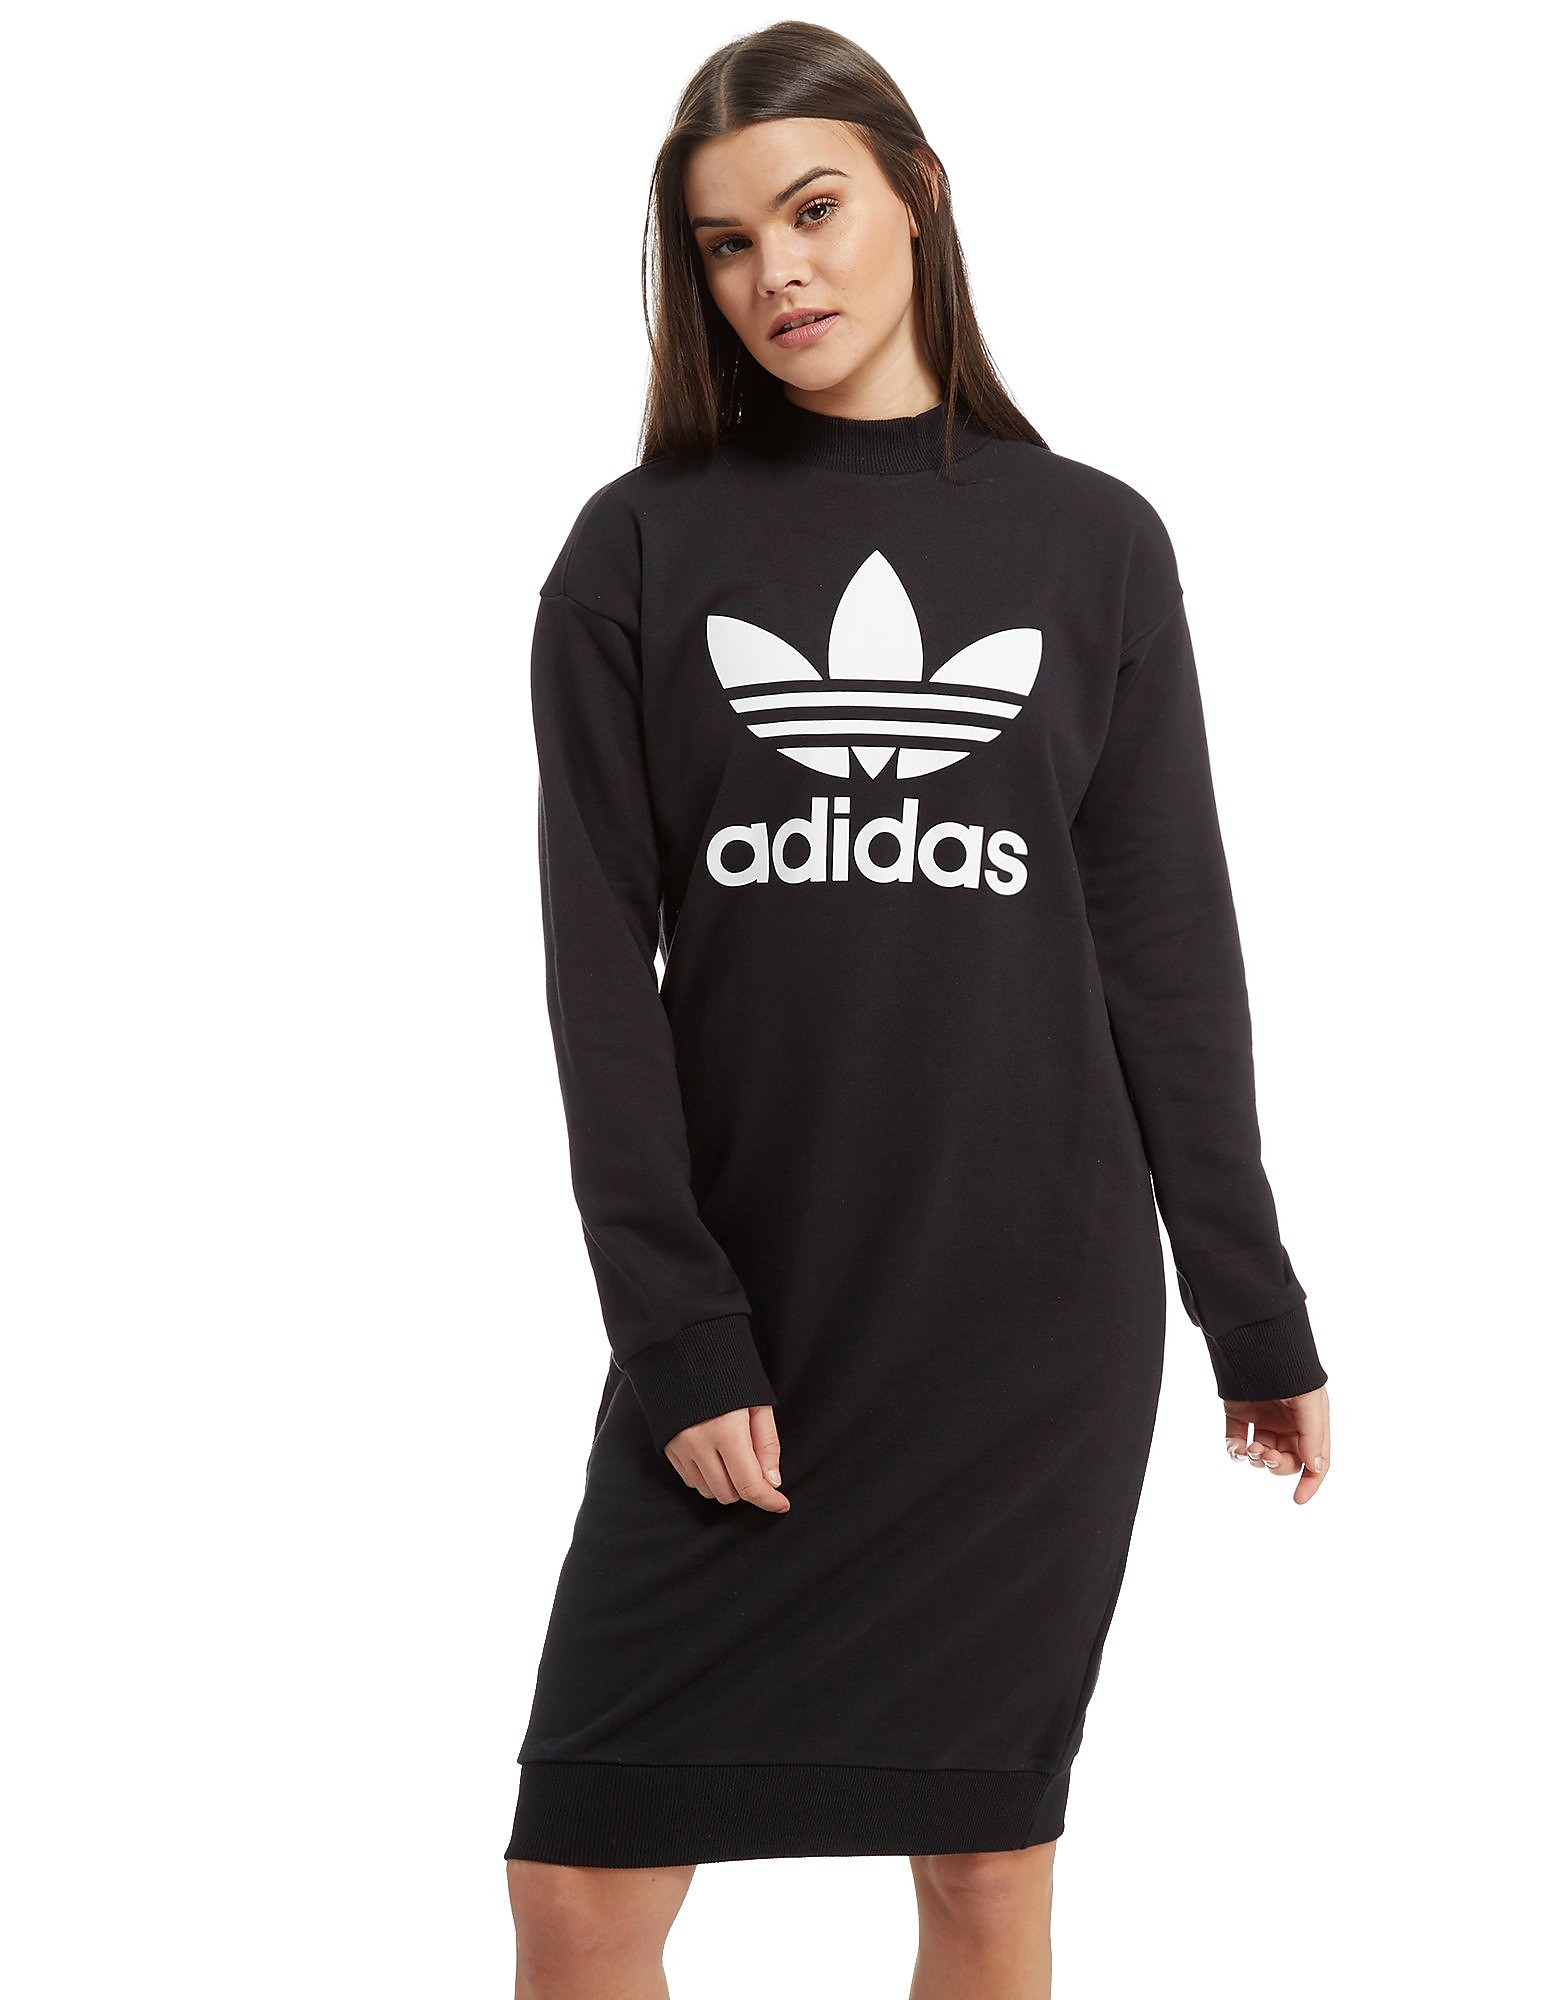 adidas Originals High Neck Trefoil Dress